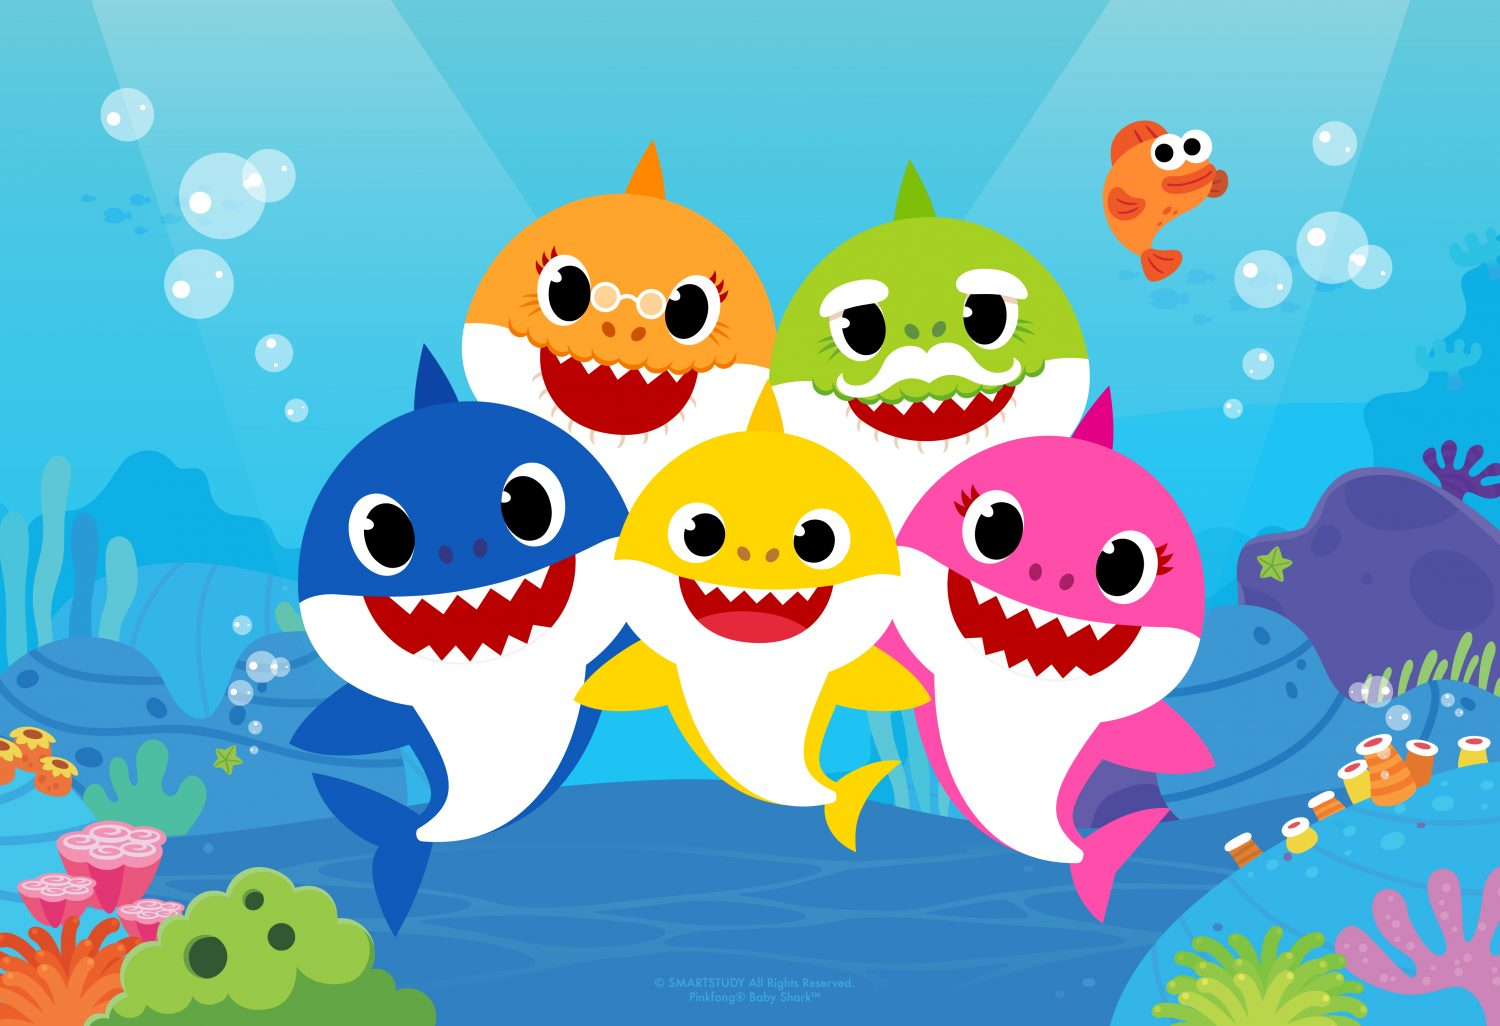 Pinkfong S Singing Dancing Animated Baby Shark Videos To Become New Nickelodeon Series Danceland